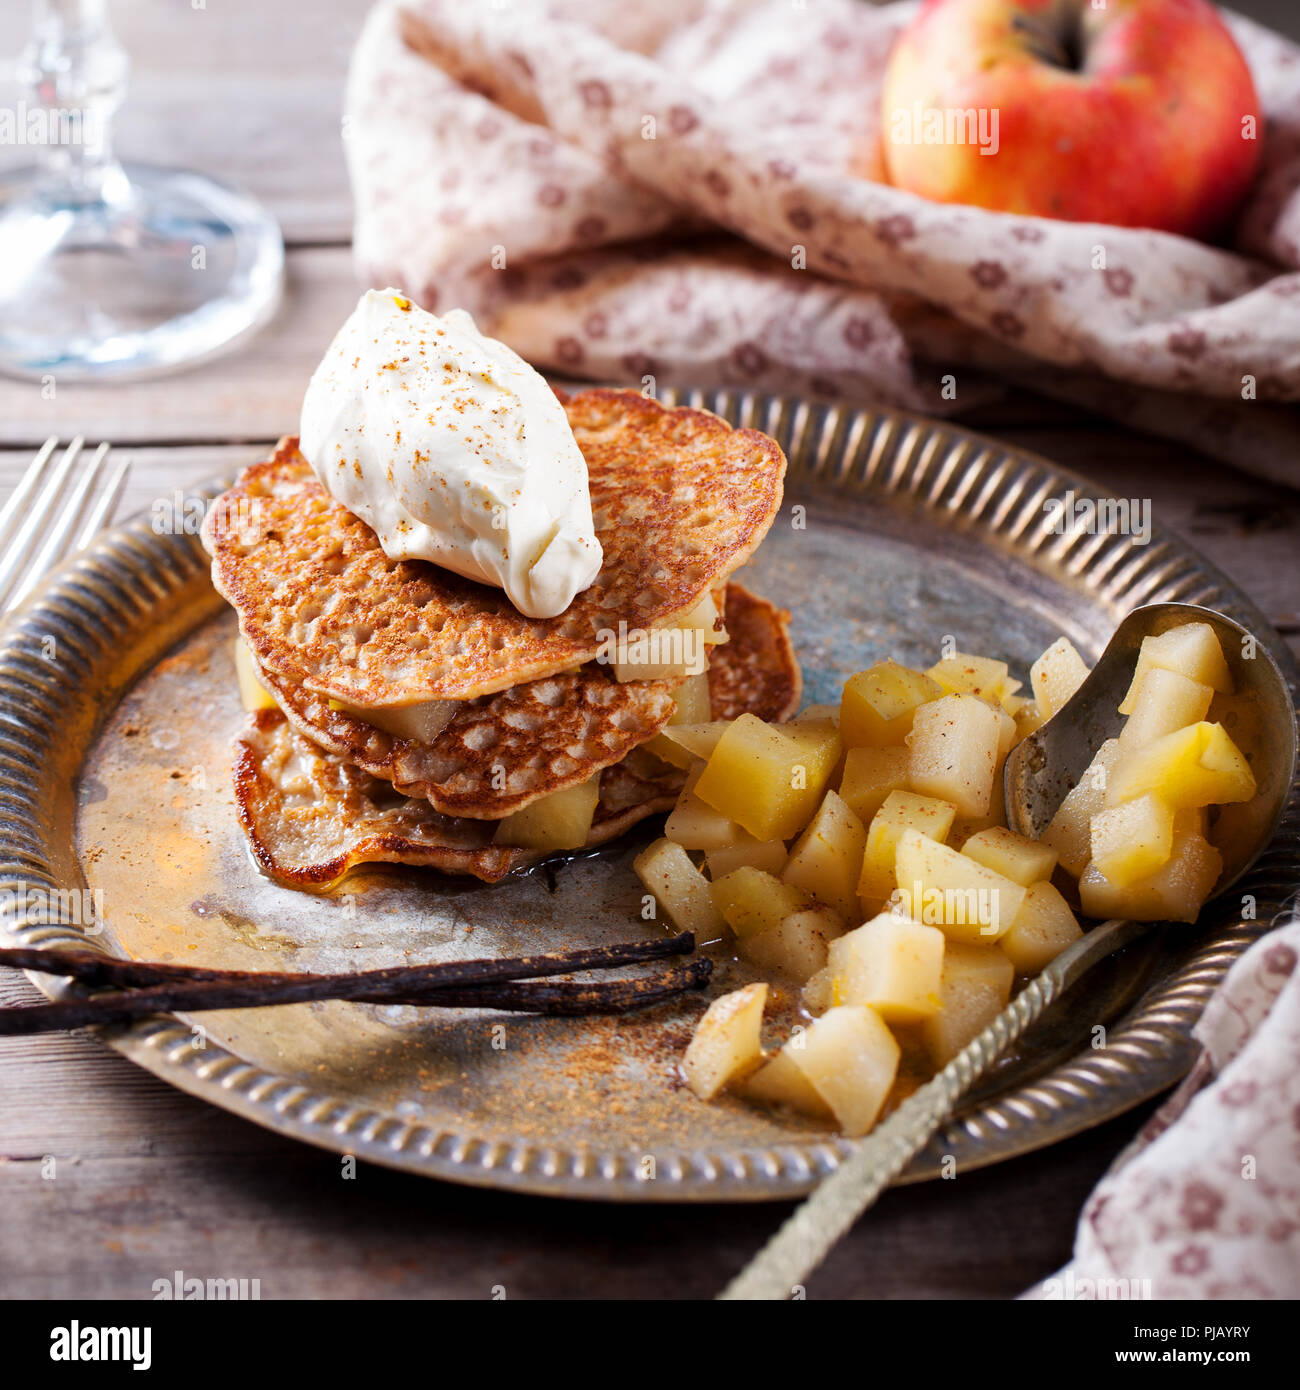 Buckwheat pancakes with poached apples and cream. - Stock Image